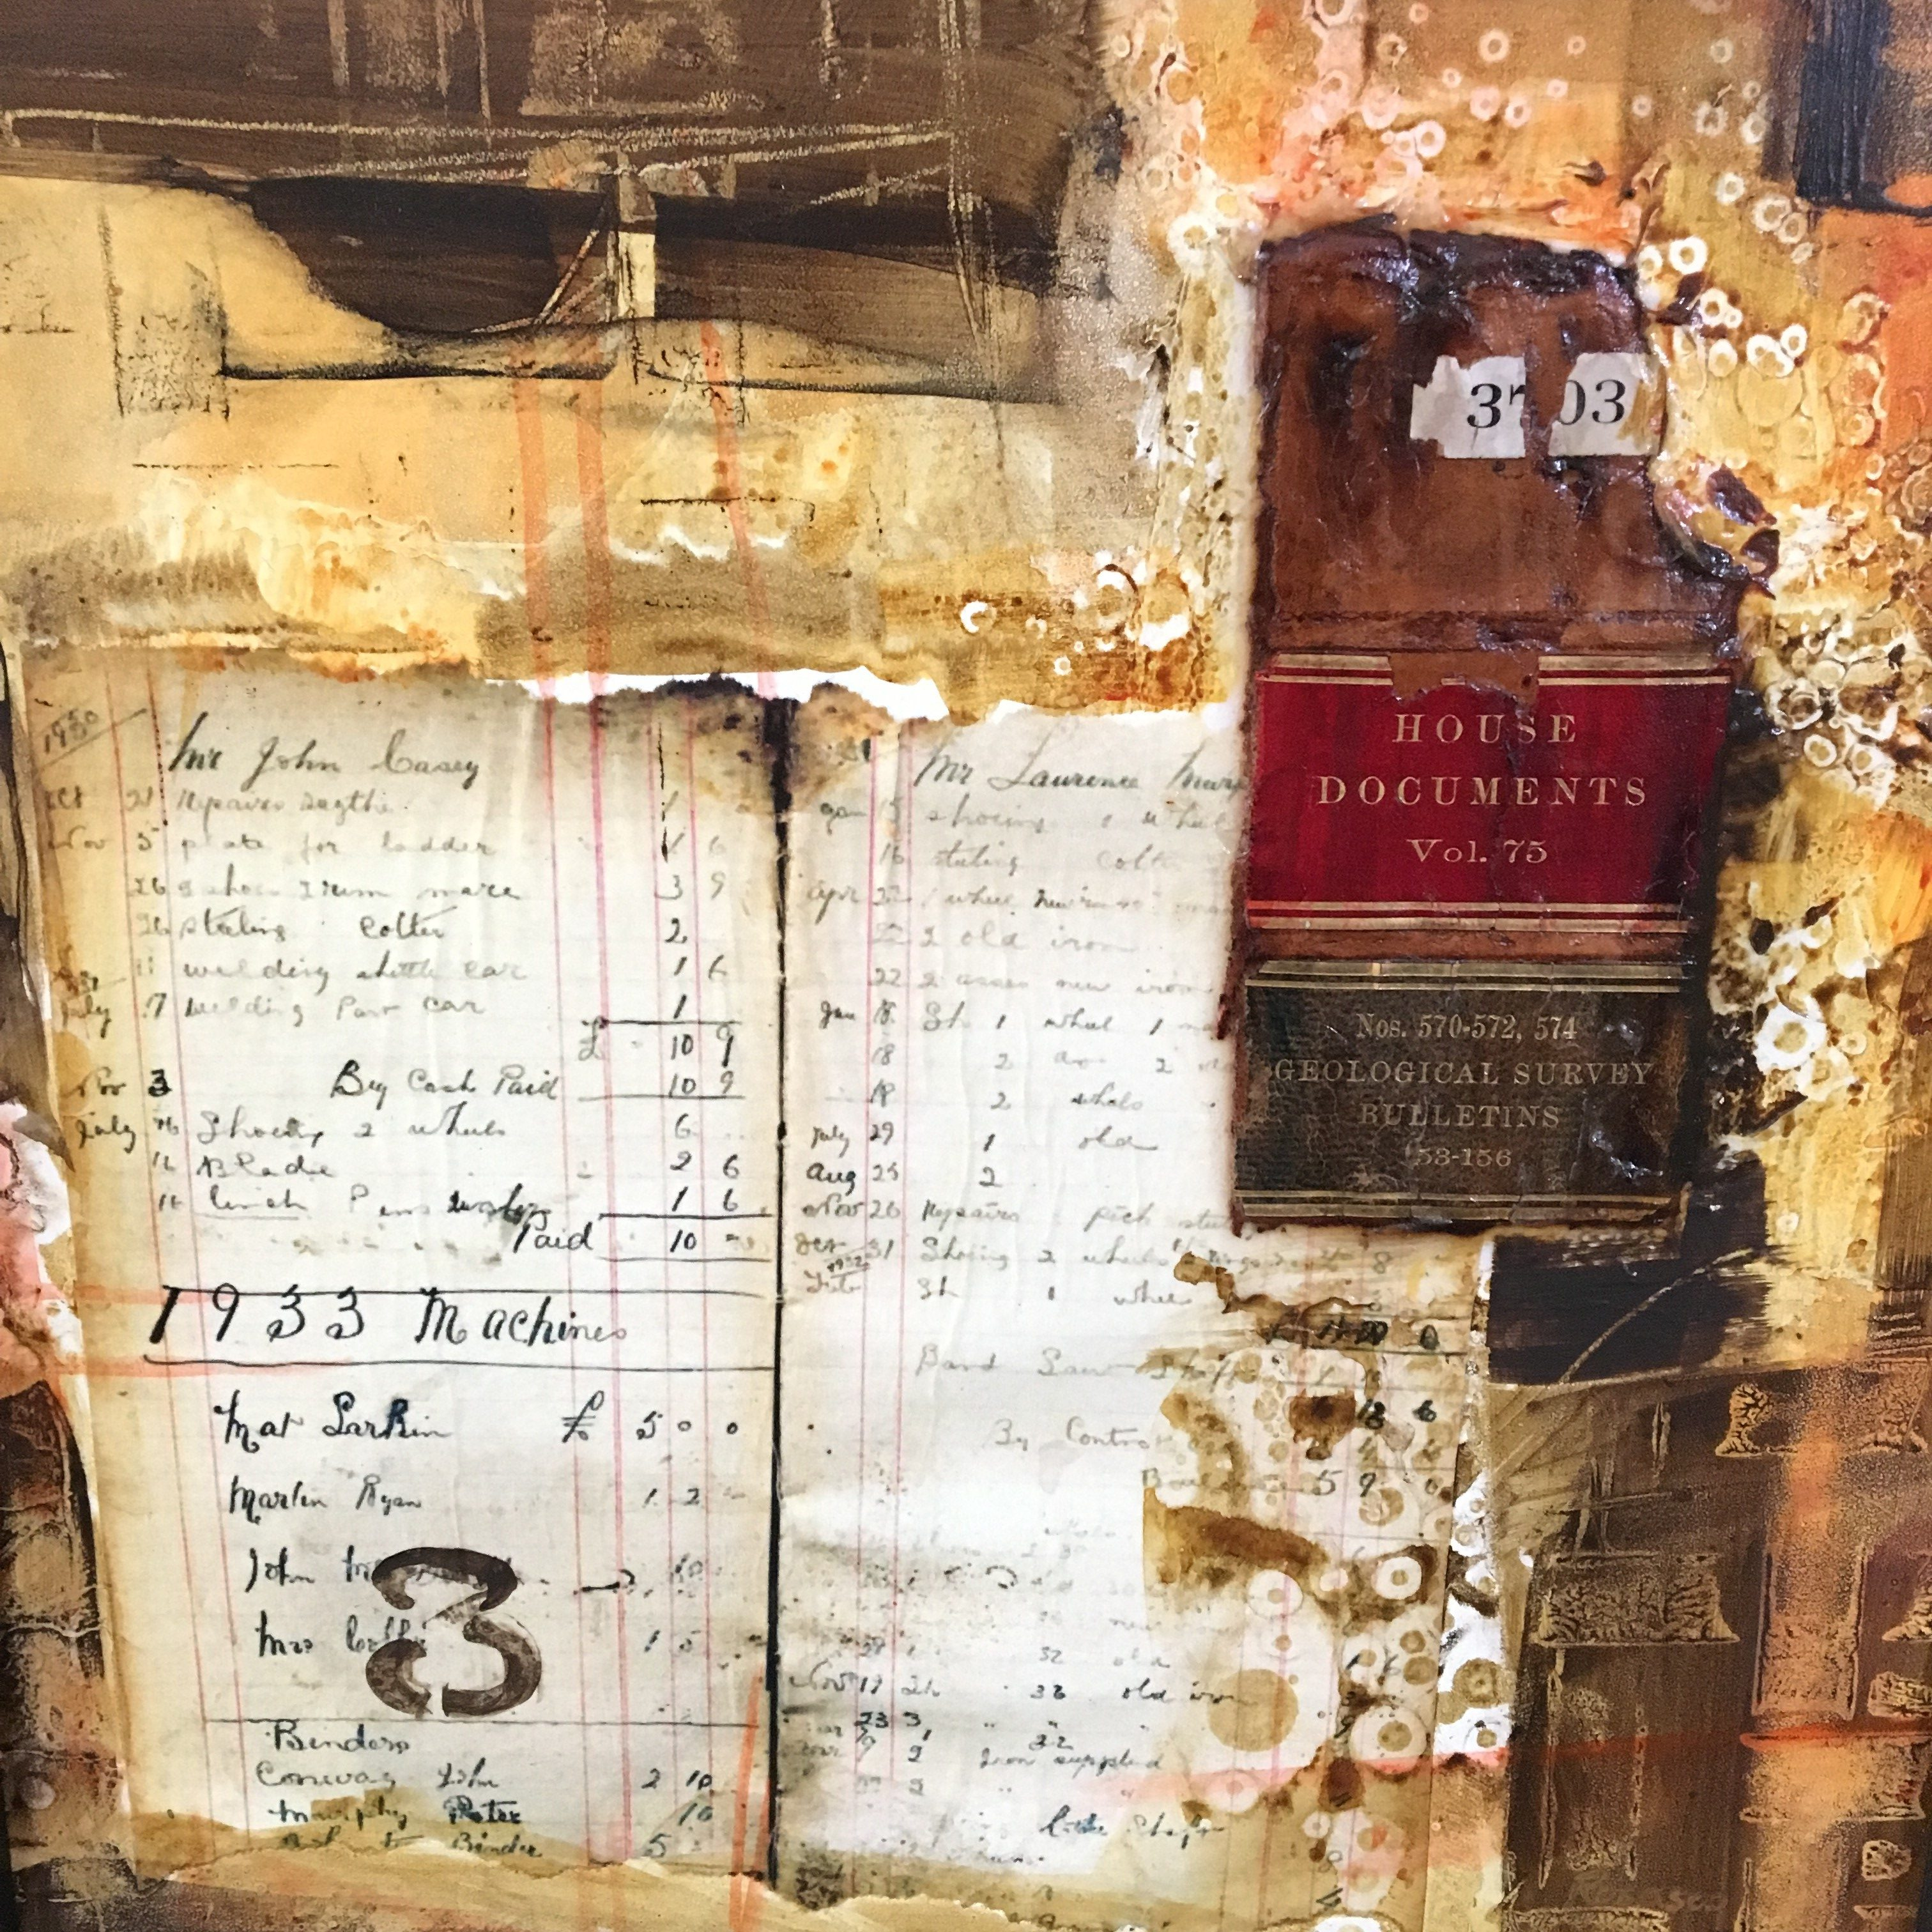 The Old Ledger | Wilson Downtown Gallery